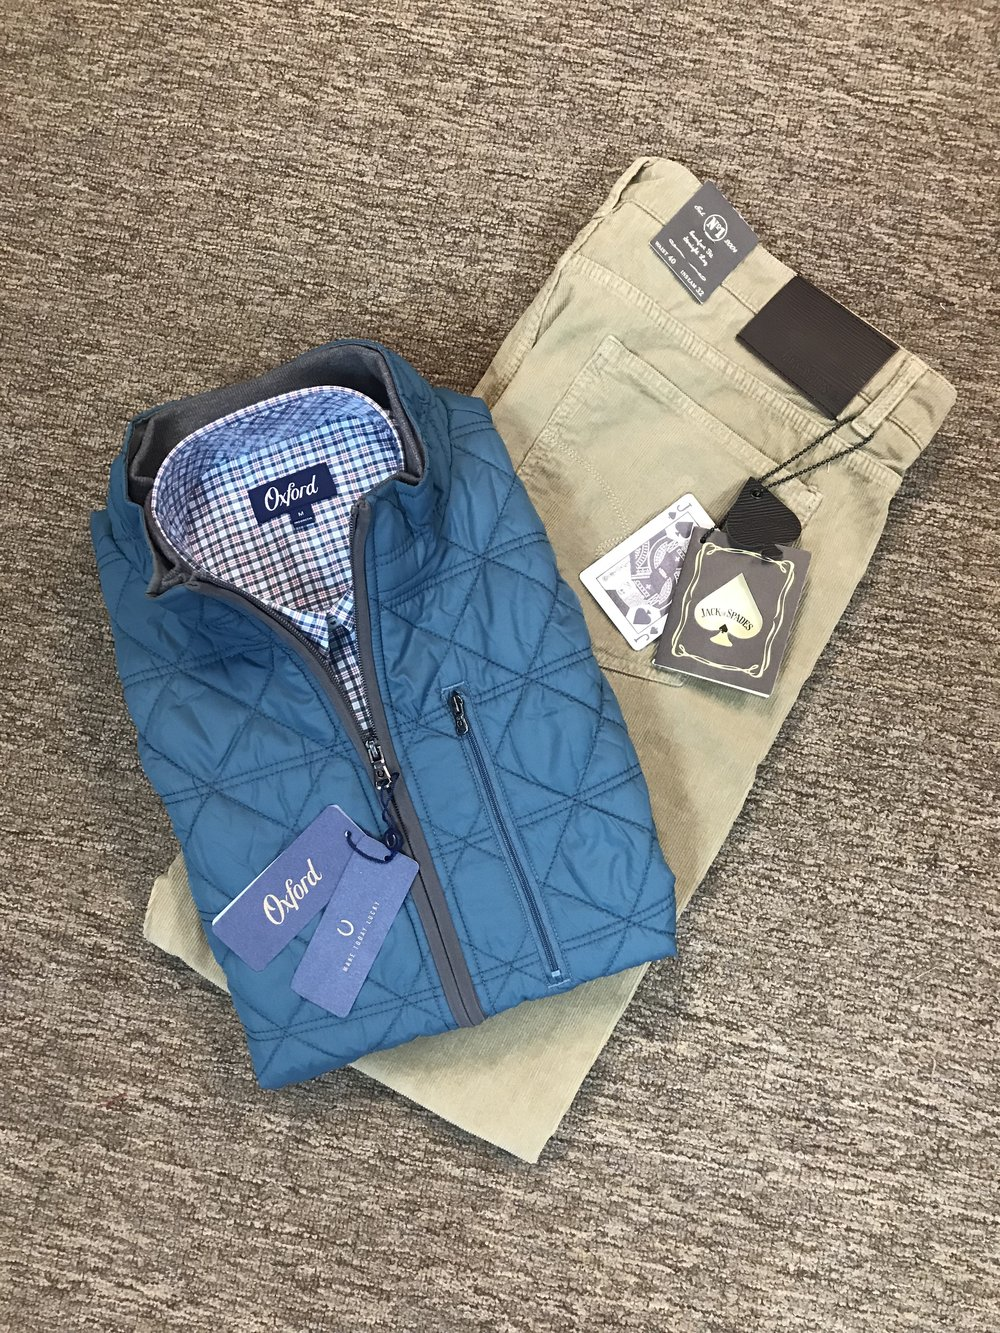 Let FHG help you pick out the perfect pieces for the man in your life!